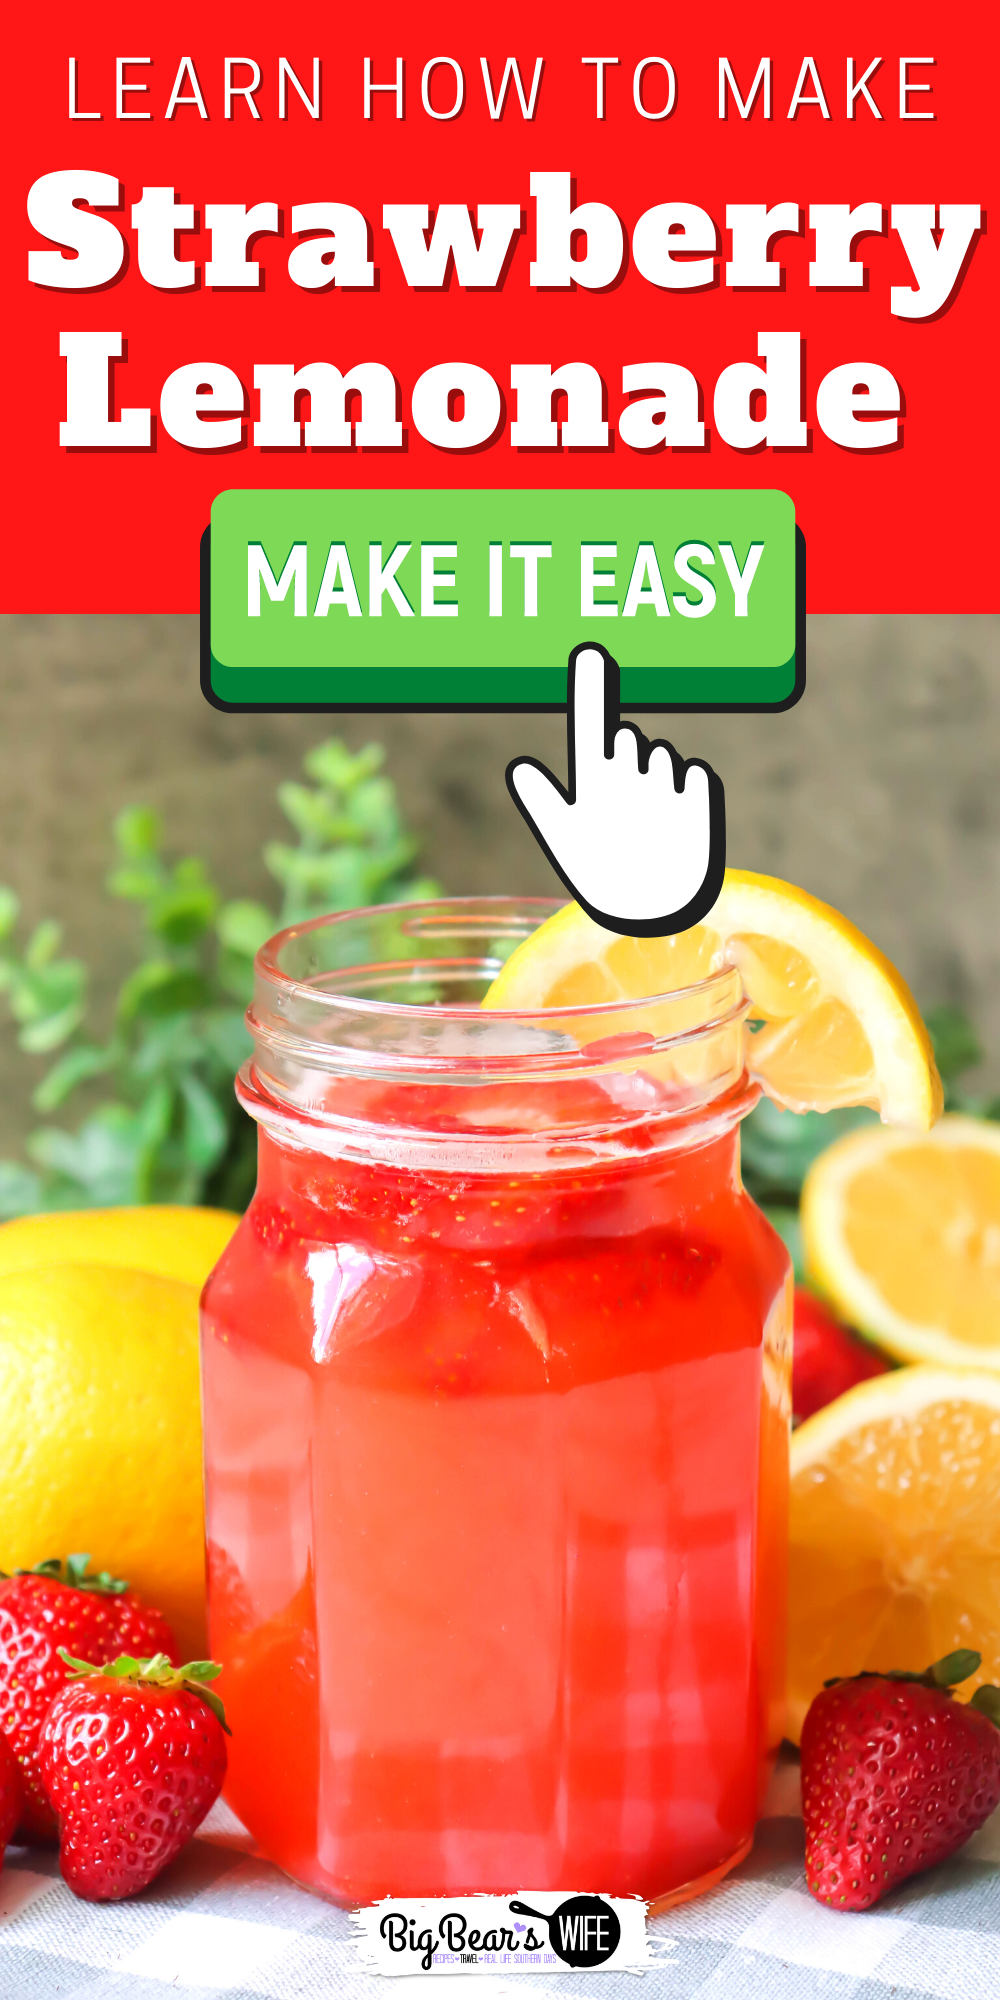 Ready for the perfect summer drink? This Strawberry Lemonade is refreshing and easy to make!  via @bigbearswife